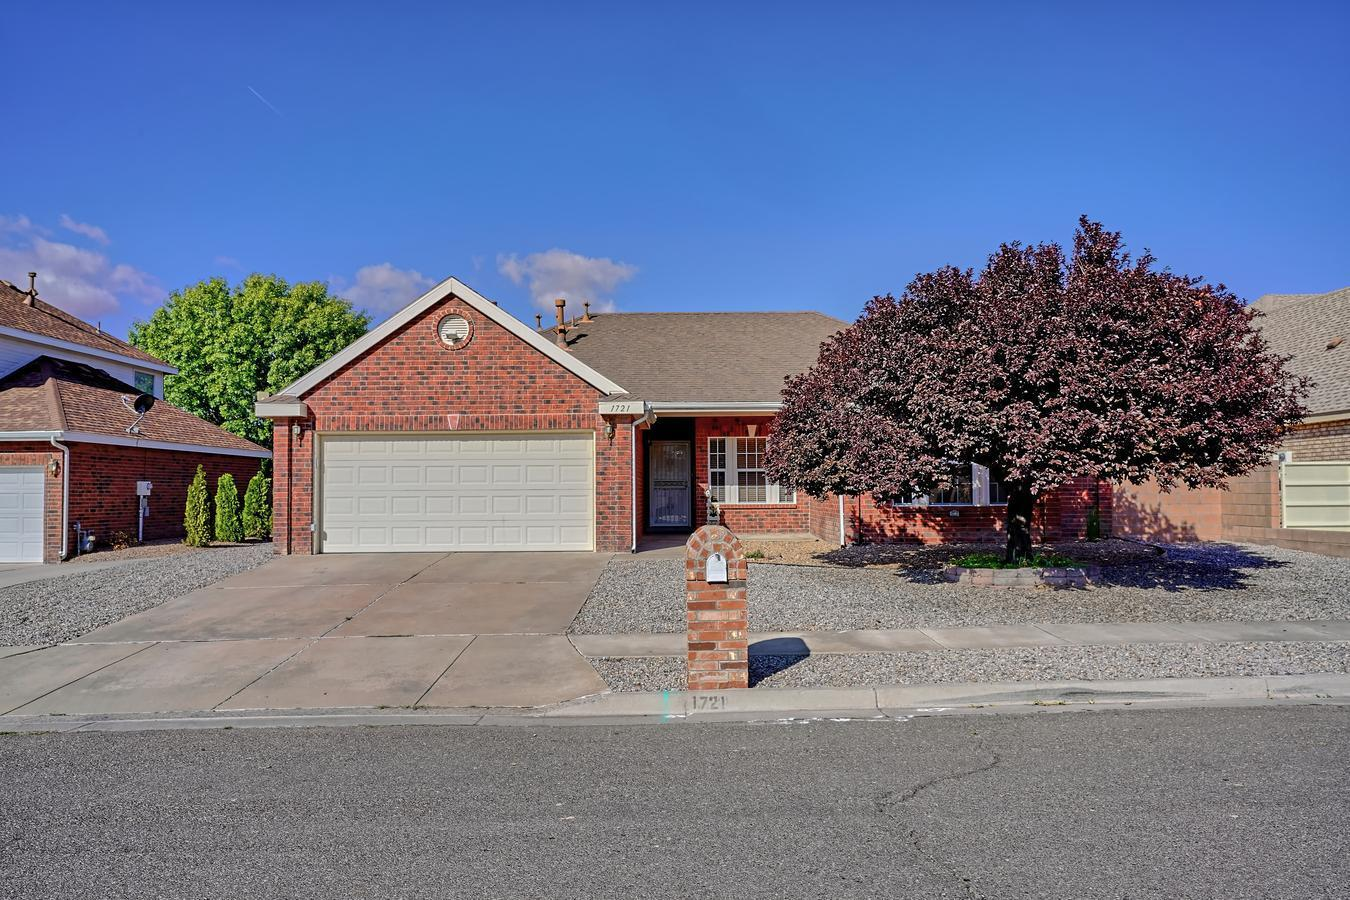 BEAUTIFUL BRICK Classic Sivage Thomas home located in a well maintained neighborhood conveniently located near the Los Lunas exit. 20 mins to the Big-I! Second owners have refreshed this well maintained Beauty w/New Paint, Blinds, Lighting fixtures, Ductwork updates for better Efficiency & Air flow, New smart thermostat, Completely New Landscaped backyard!! New irrigation for lawn! Raised beds! Play area & Raised privacy wall! Kitchen is a Cooks/Entertainers delight featuring beautiful Oak cabinets, lots of counterspace, Kitchen Island & Bar, large Pantry & opens to the Large DR for everyone to gather! 3 Bedrooms w/a Flex room for possible home office or 4th BR. 2 Full Bathrooms have been updated w/new toilets! Master has gorgeous new laminate flooring! + Separate shower & Garden tub!!